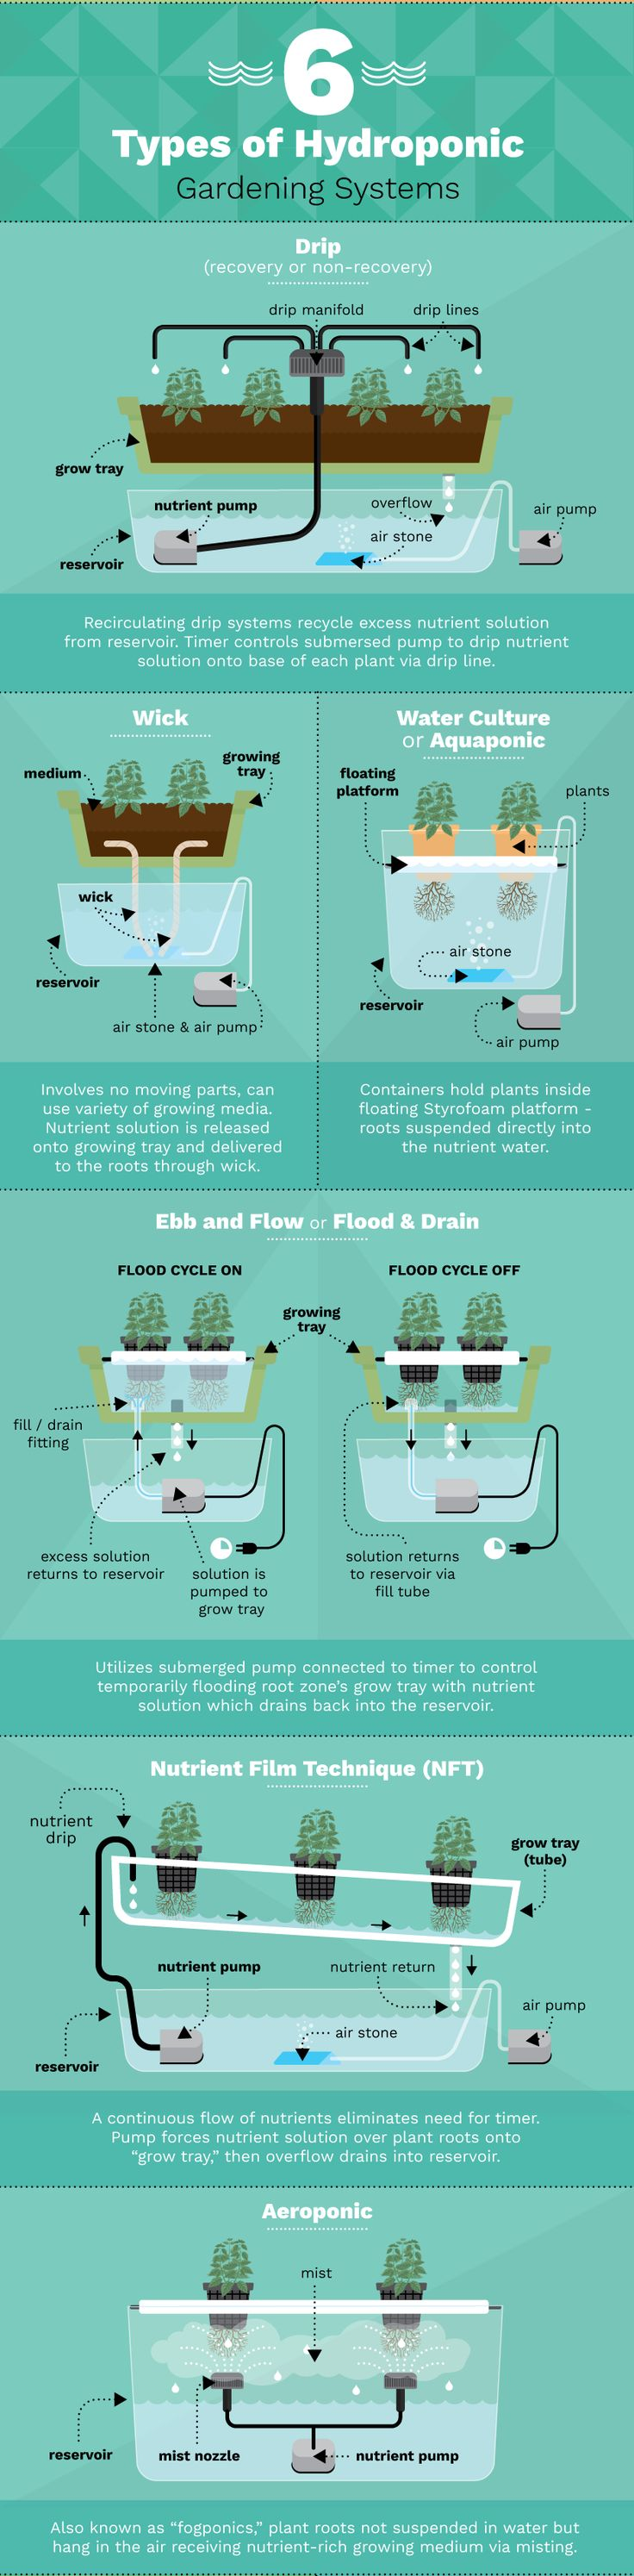 6 Different Hydroponic Gardening Systems For Growing Food… | http://www.ecosnippets.com/gardening/hydroponic-gardening-systems/